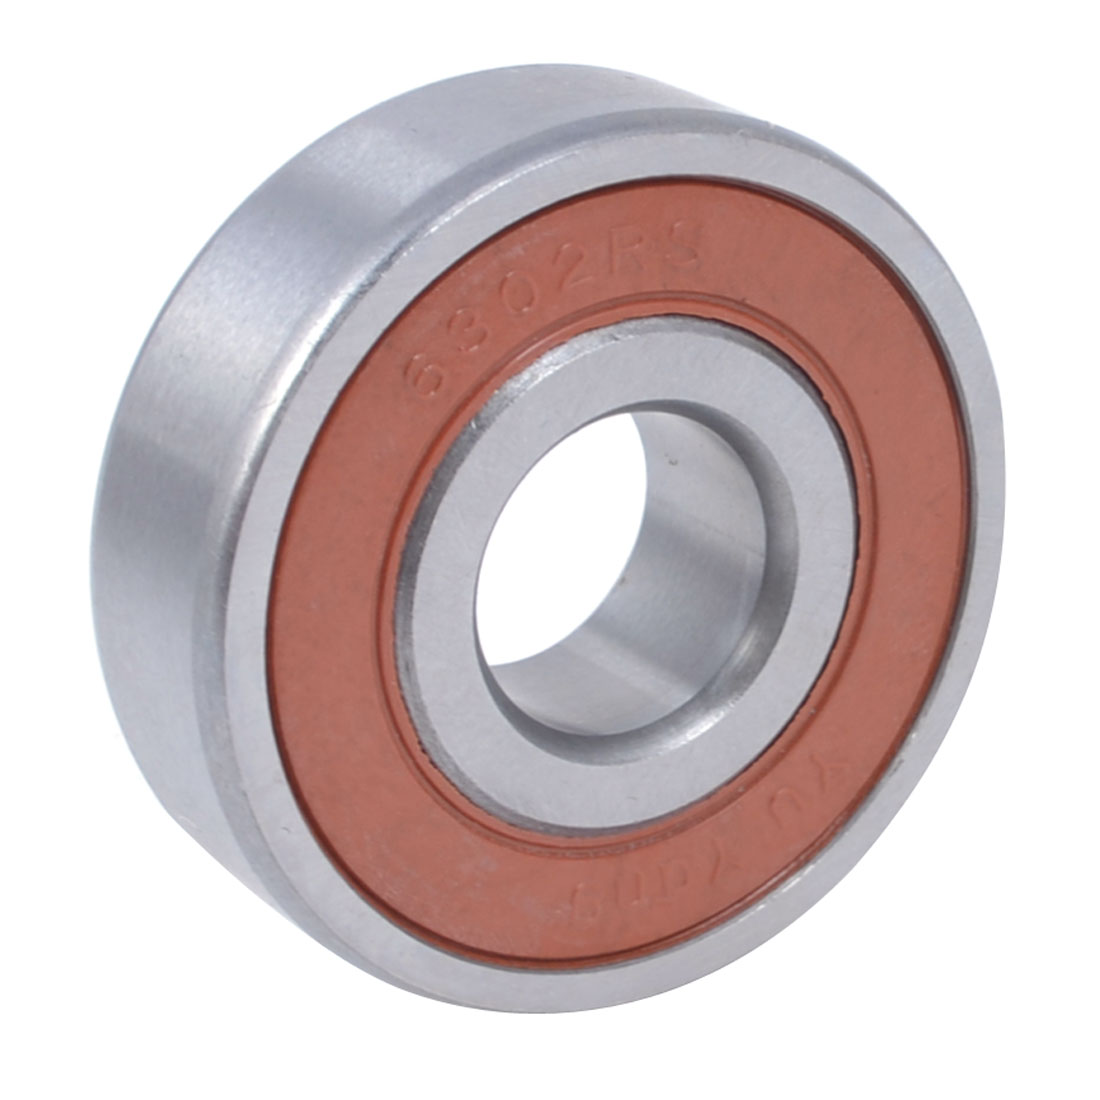 6302-2RS Sealed Deep Groove Ball Roller Bearing 41mm Outer Dia Red Silver Tone